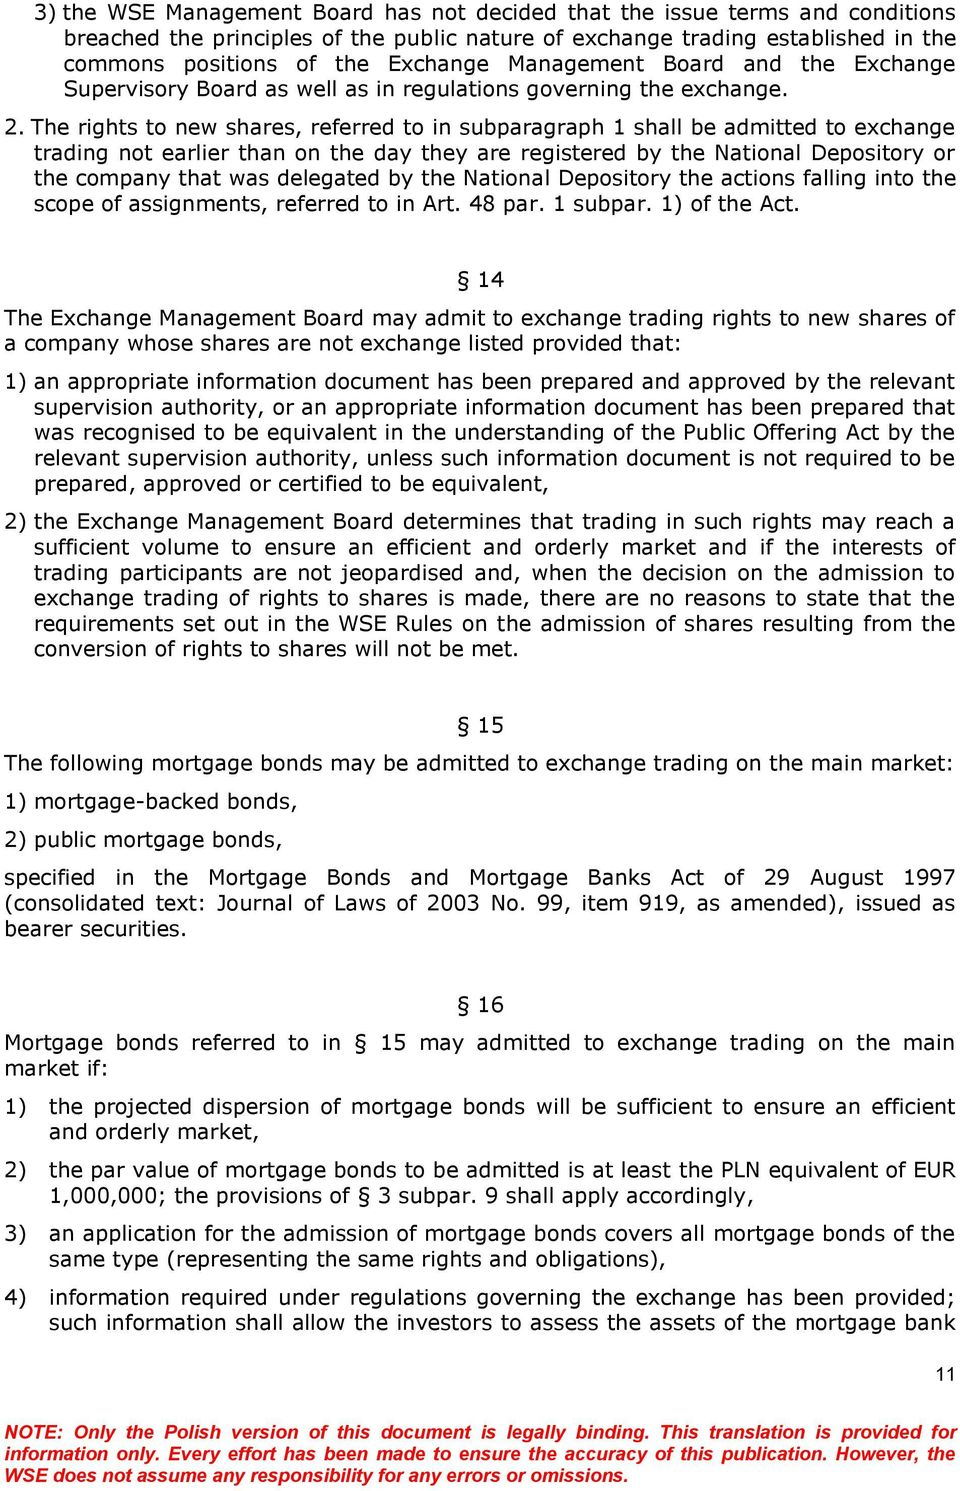 The rights to new shares, referred to in subparagraph 1 shall be admitted to exchange trading not earlier than on the day they are registered by the National Depository or the company that was